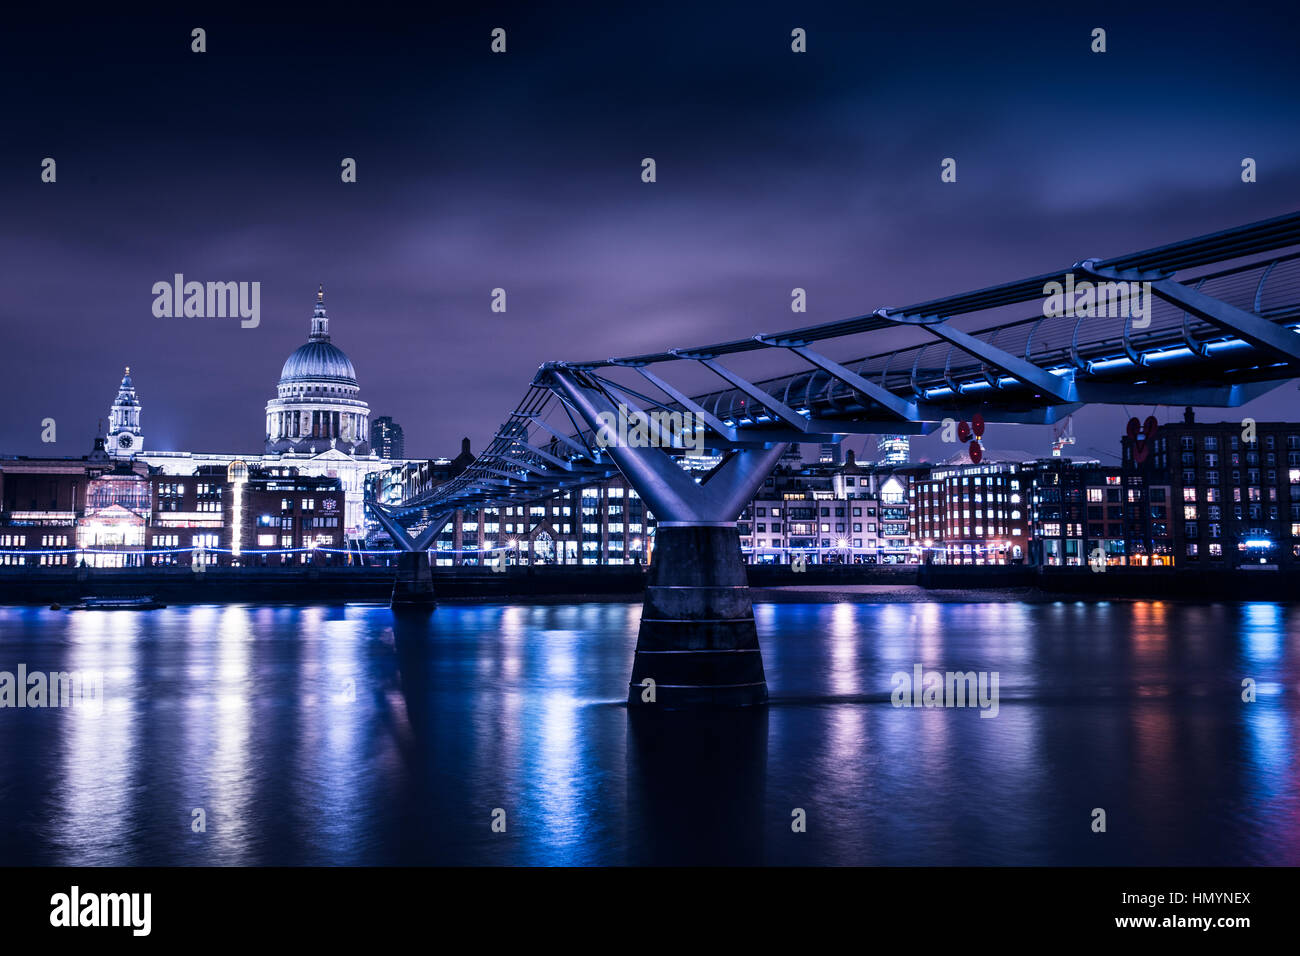 Millennium Bridge in London by night - Stock Image